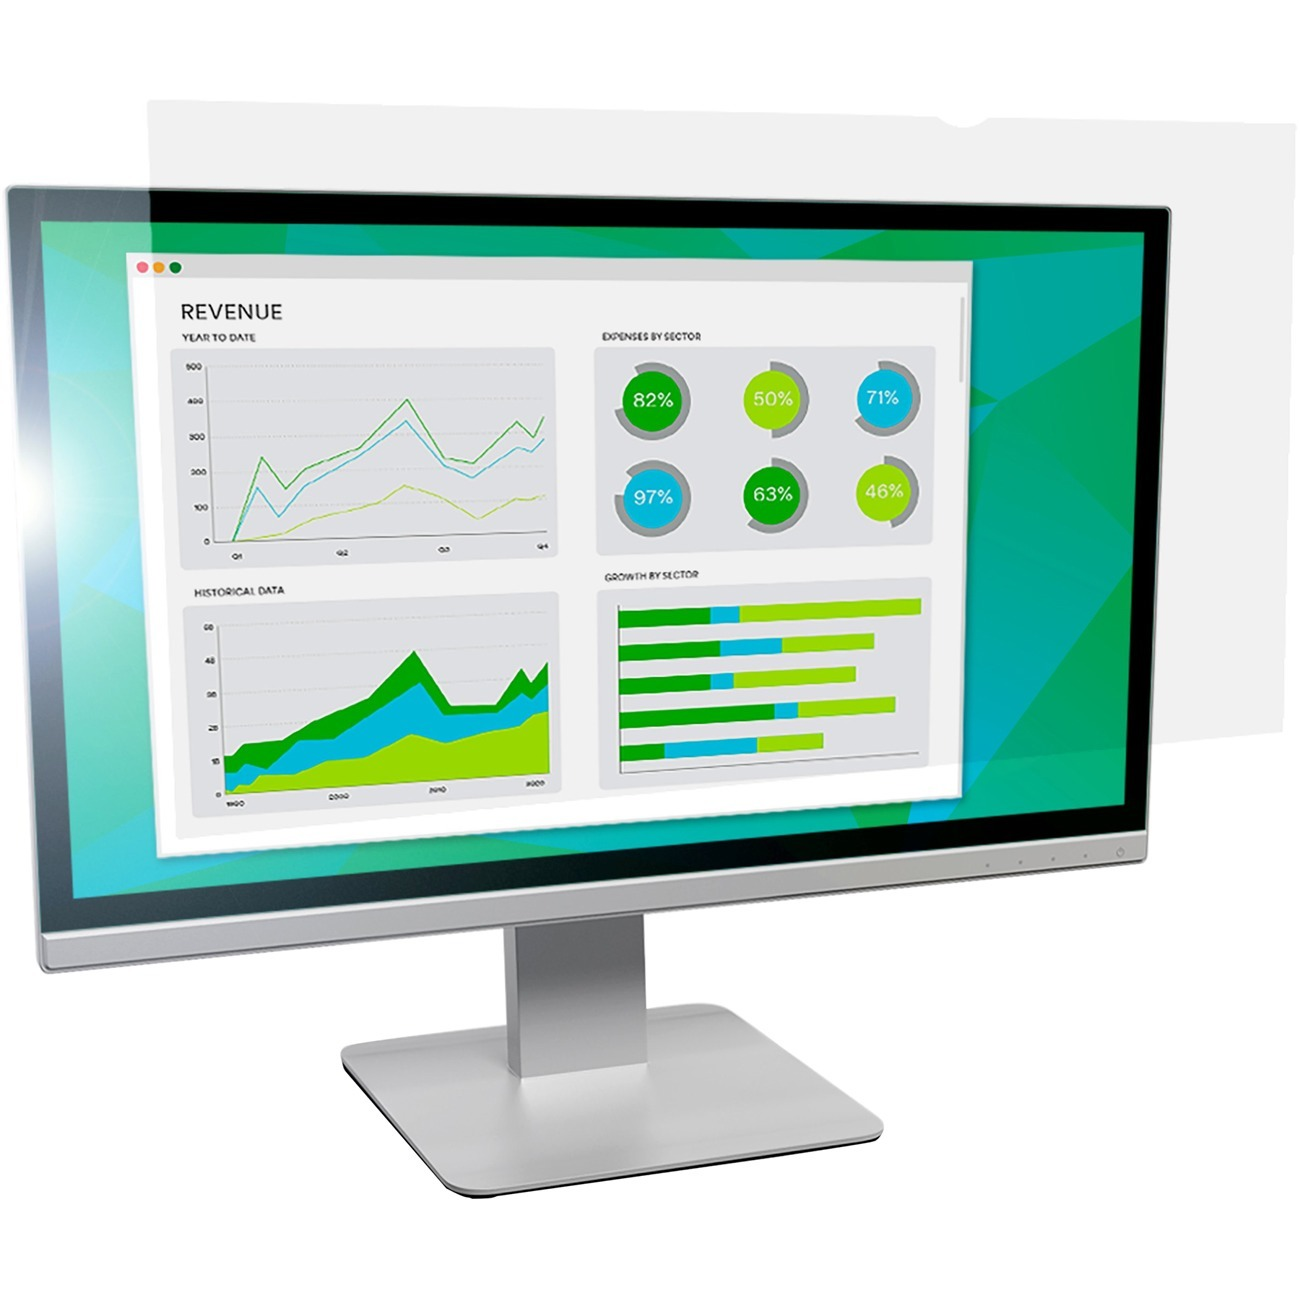 """3M, MMMAG215W9B, Anti-Glare Filter for 21.5"""" Widescreen Monitor (AG215W9B), Clear,Matte"""